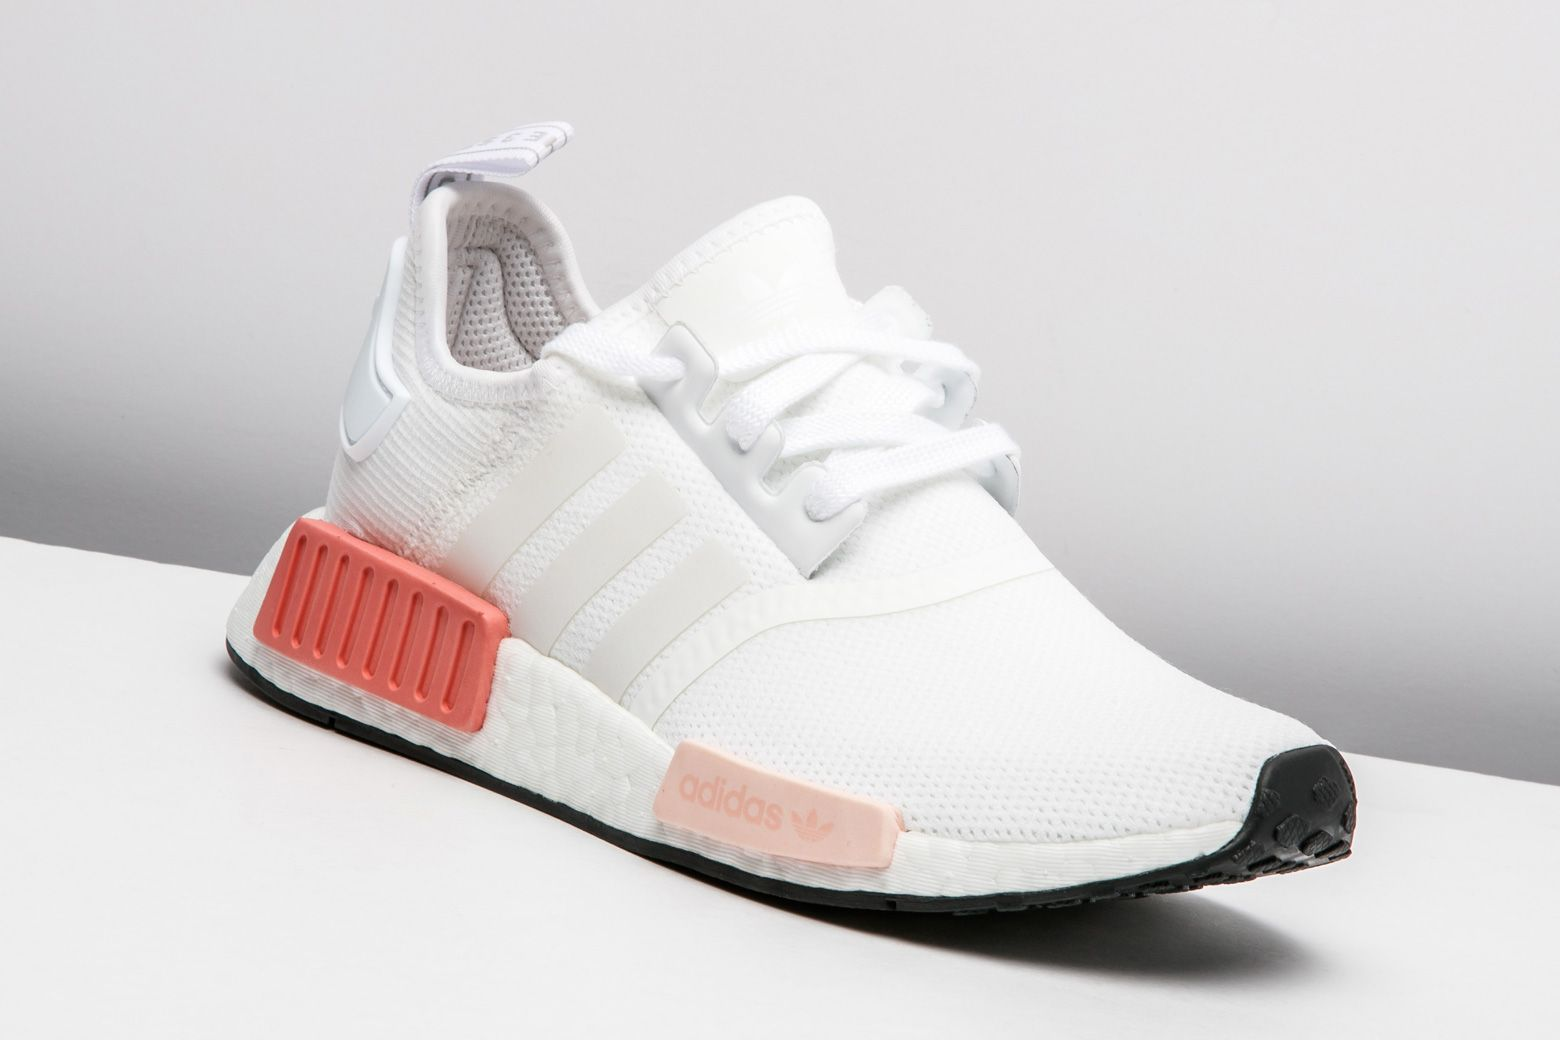 adidas dresses the classic NMD_R1 model in this clean women's exclusive